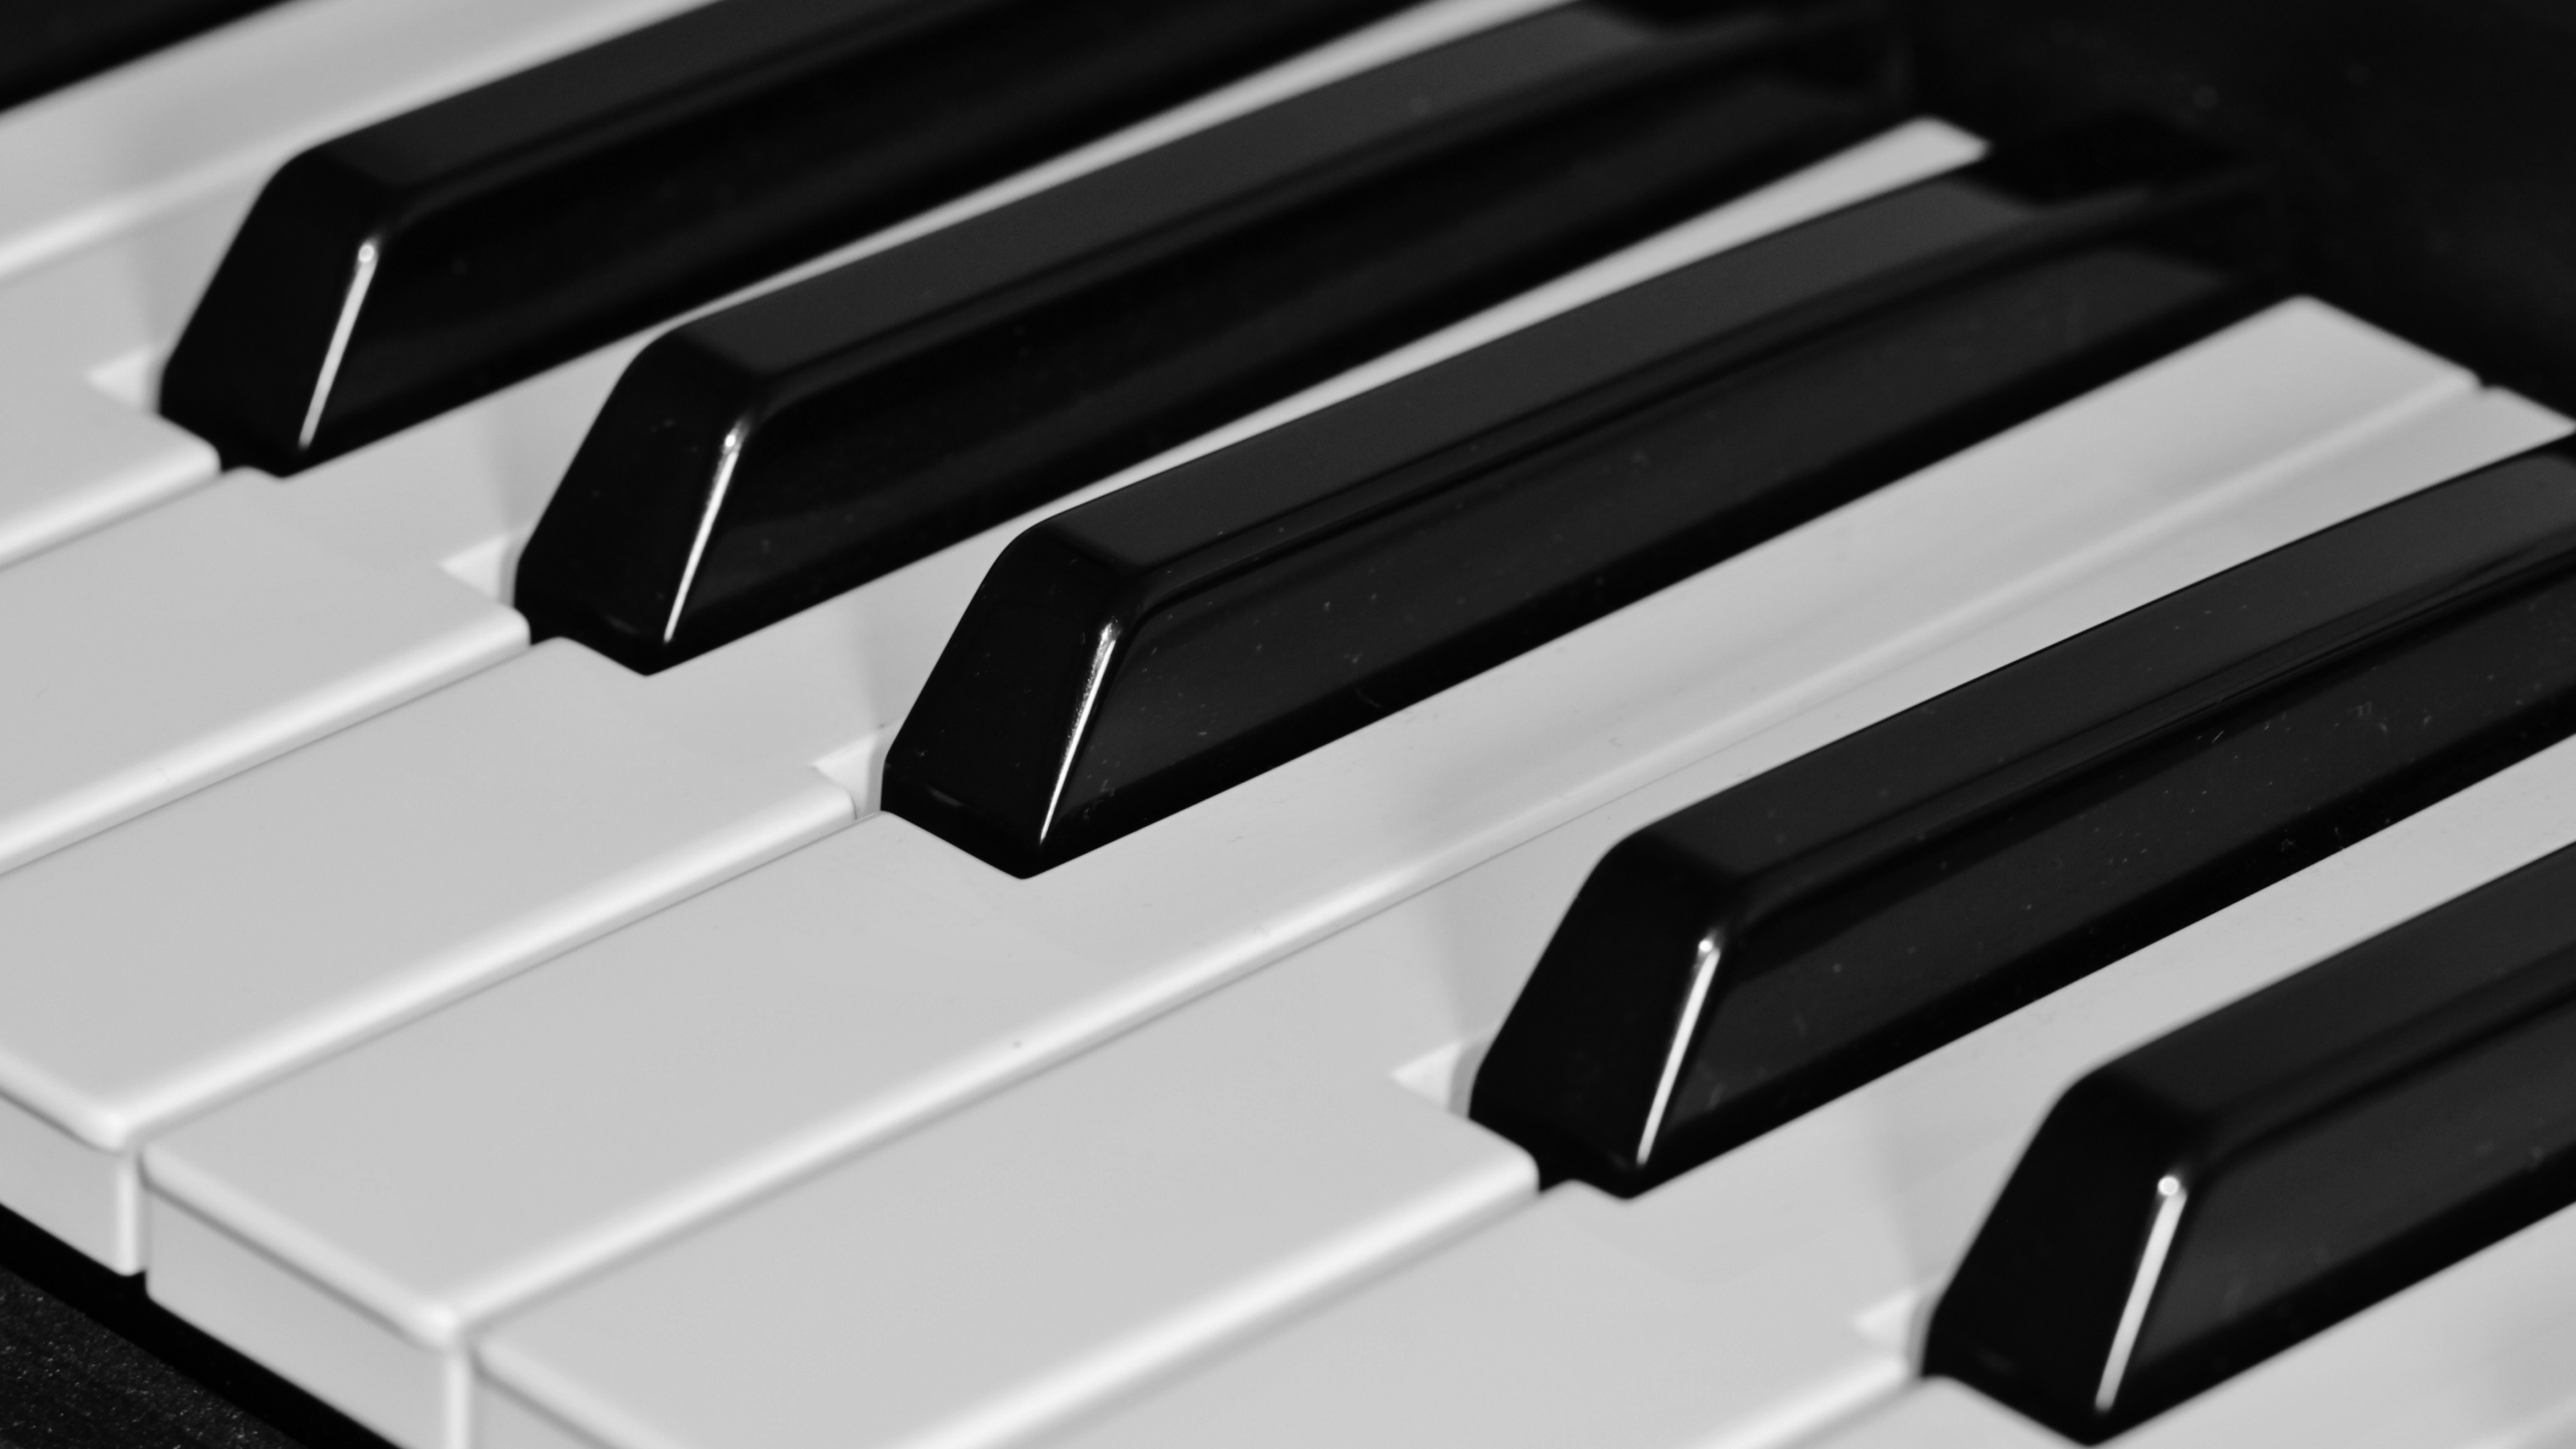 Related Wallpapers Piano Keys